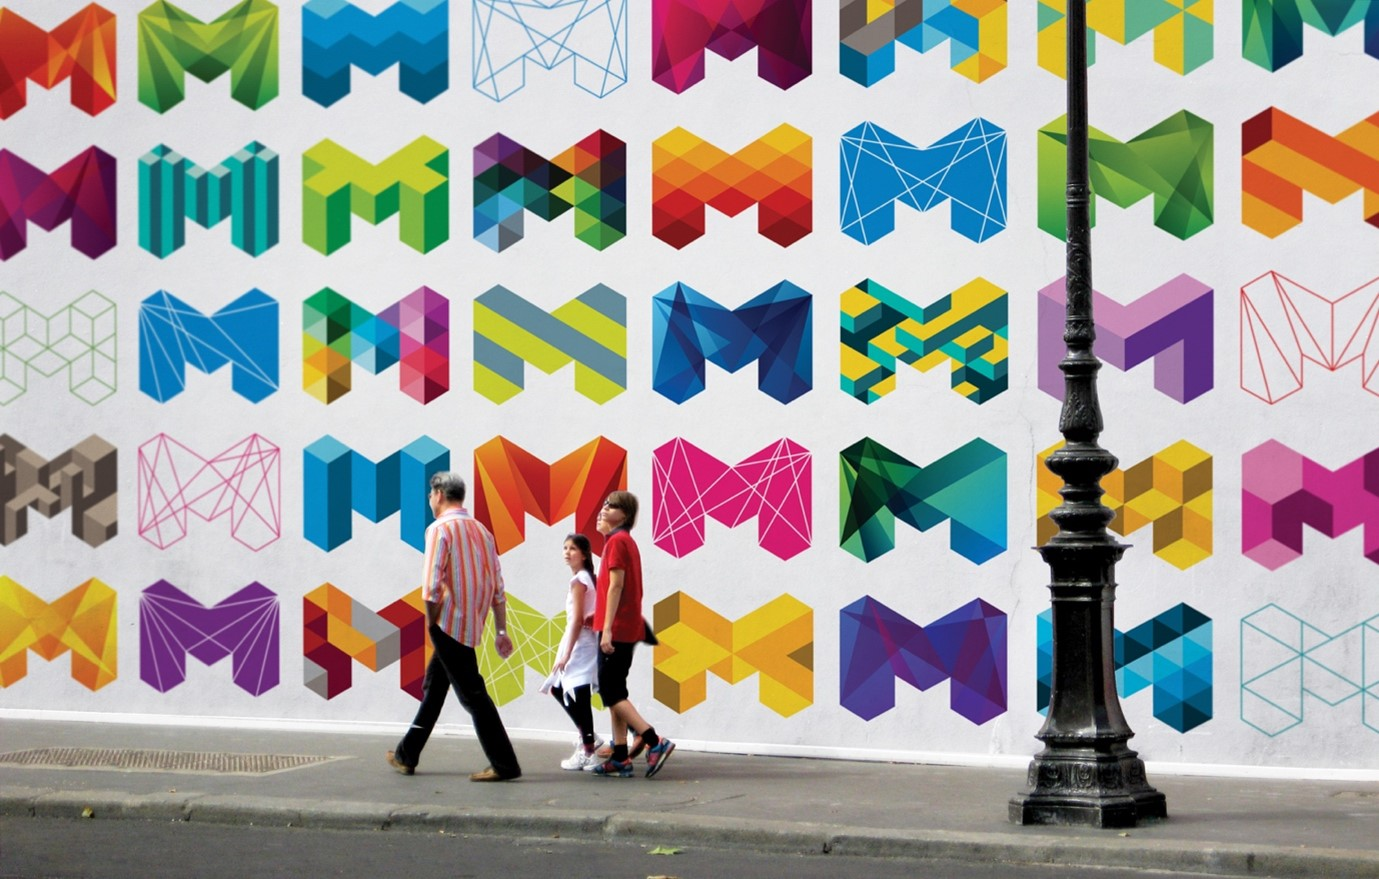 Three people walking past an example of Melbourne's branding.